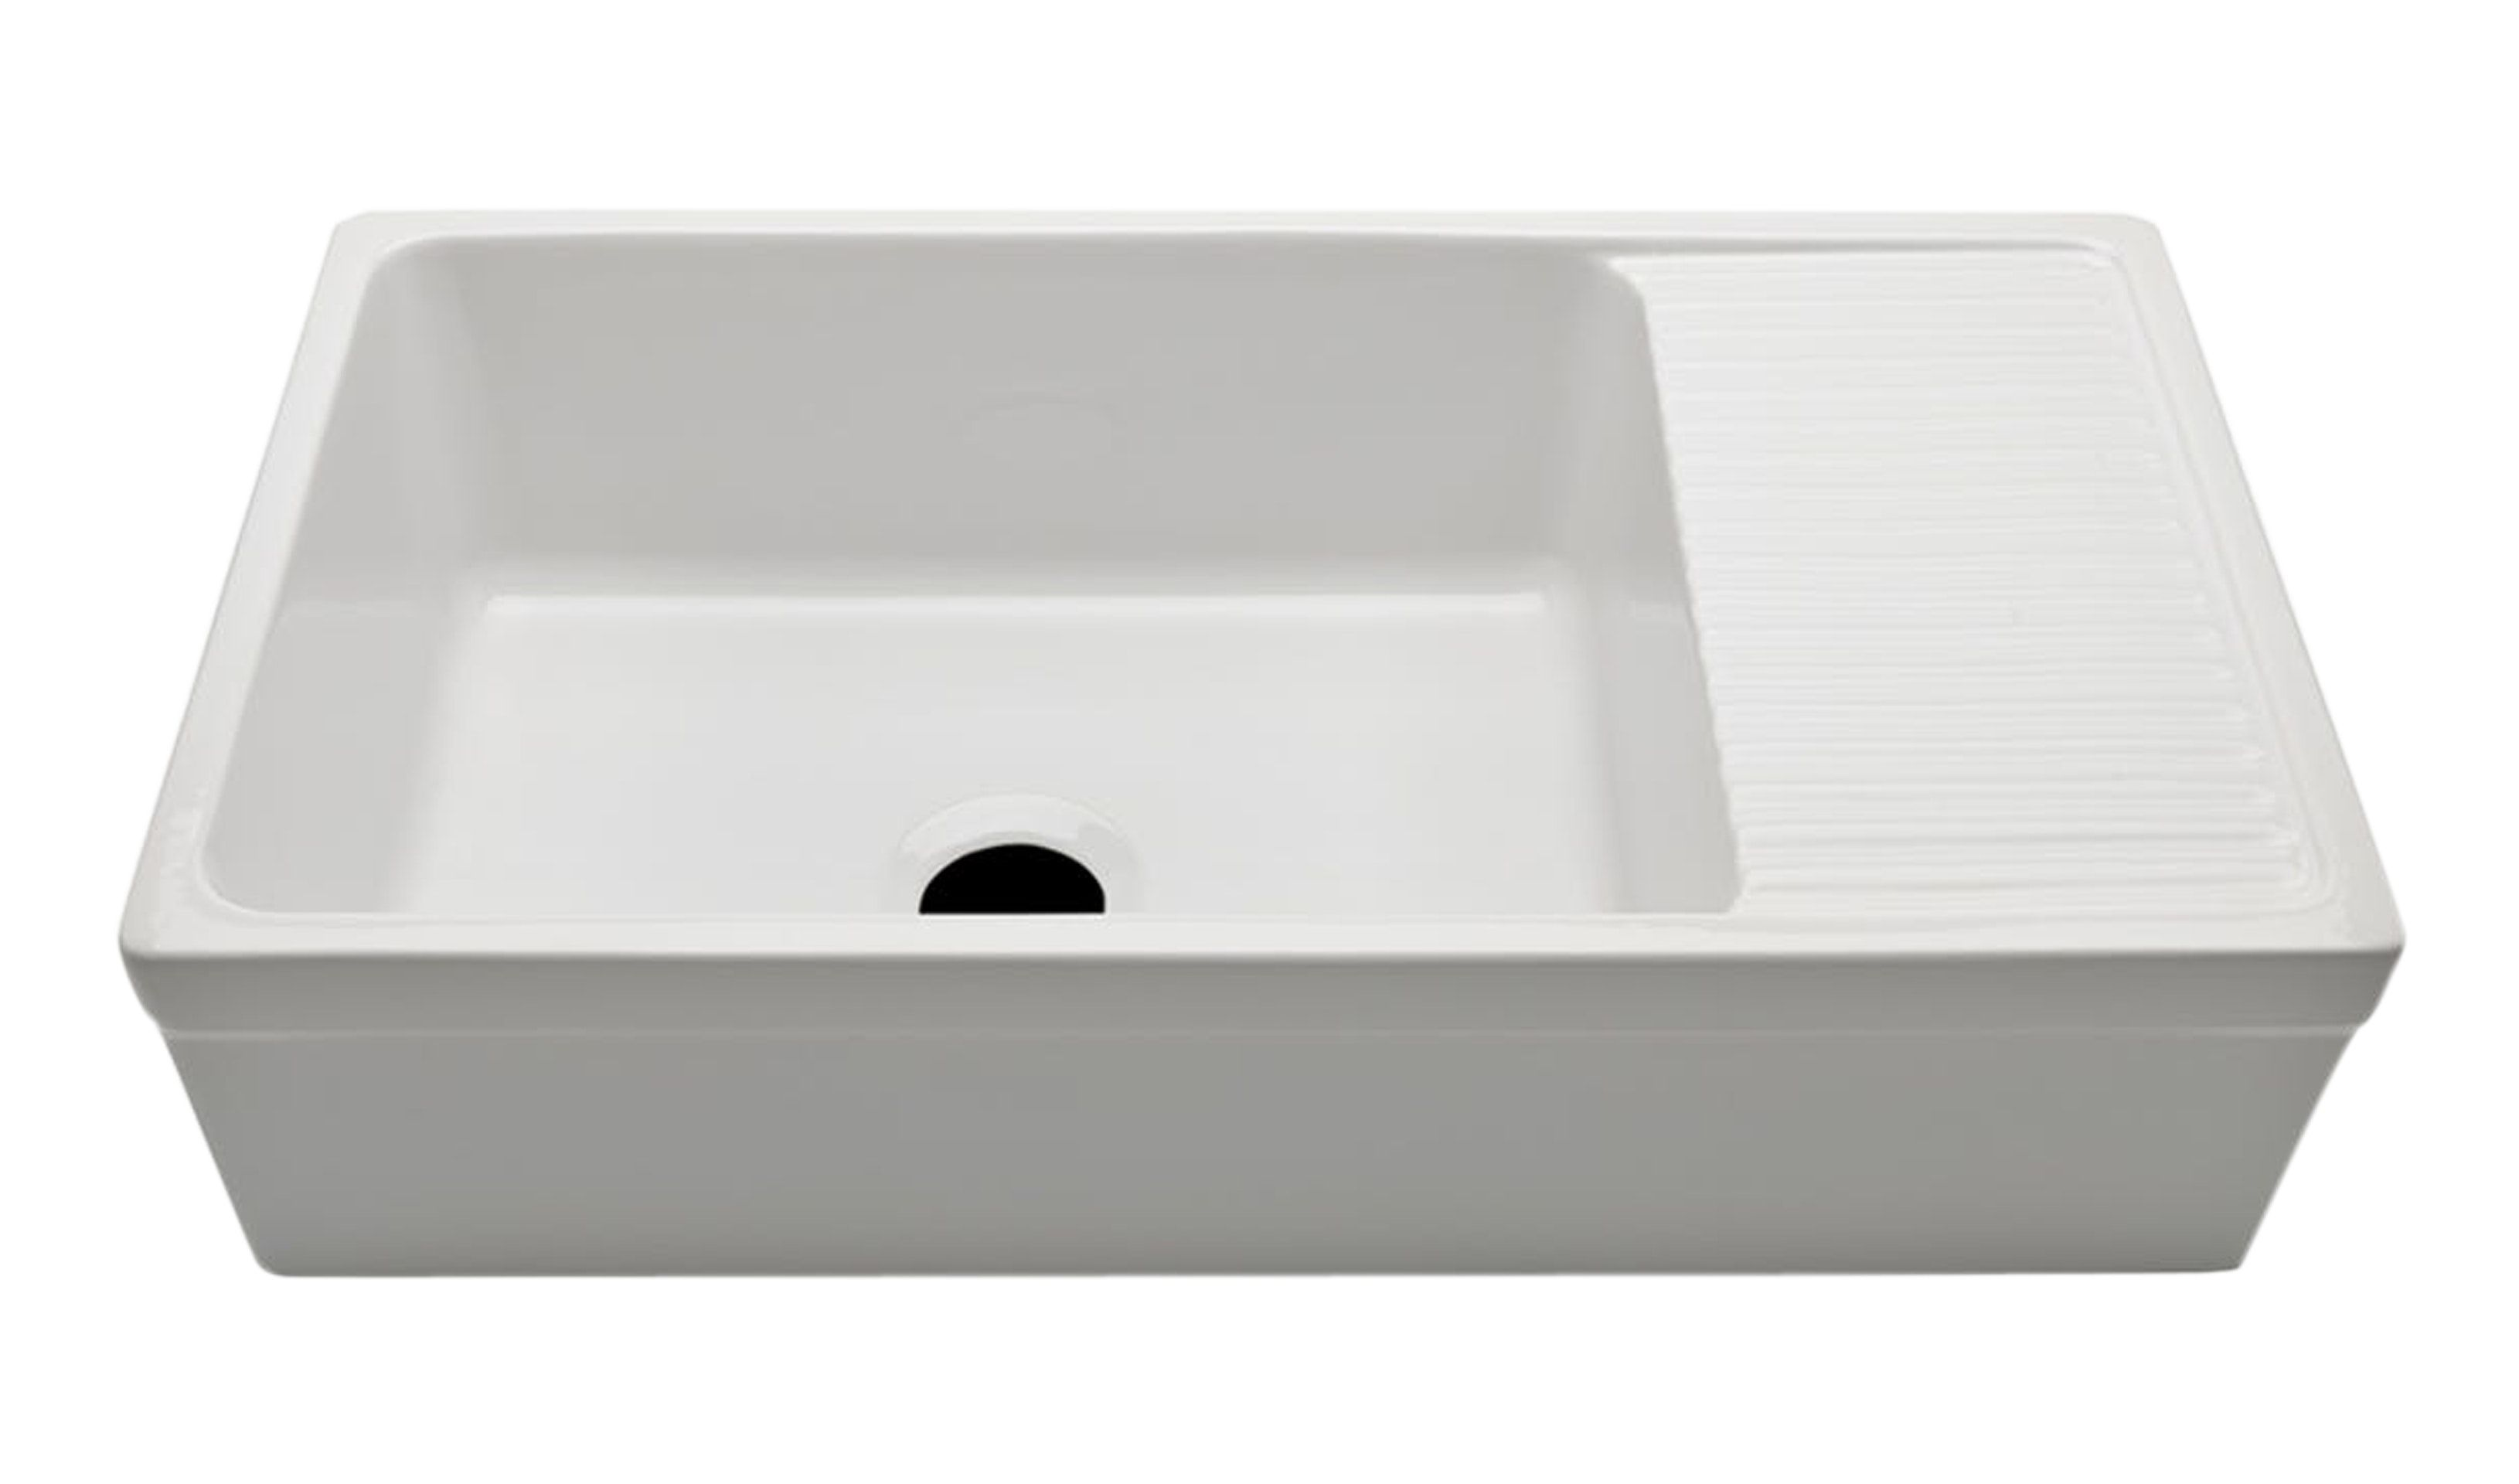 Clayburn Fireclay Farmhouse Apron Kitchen Sink with